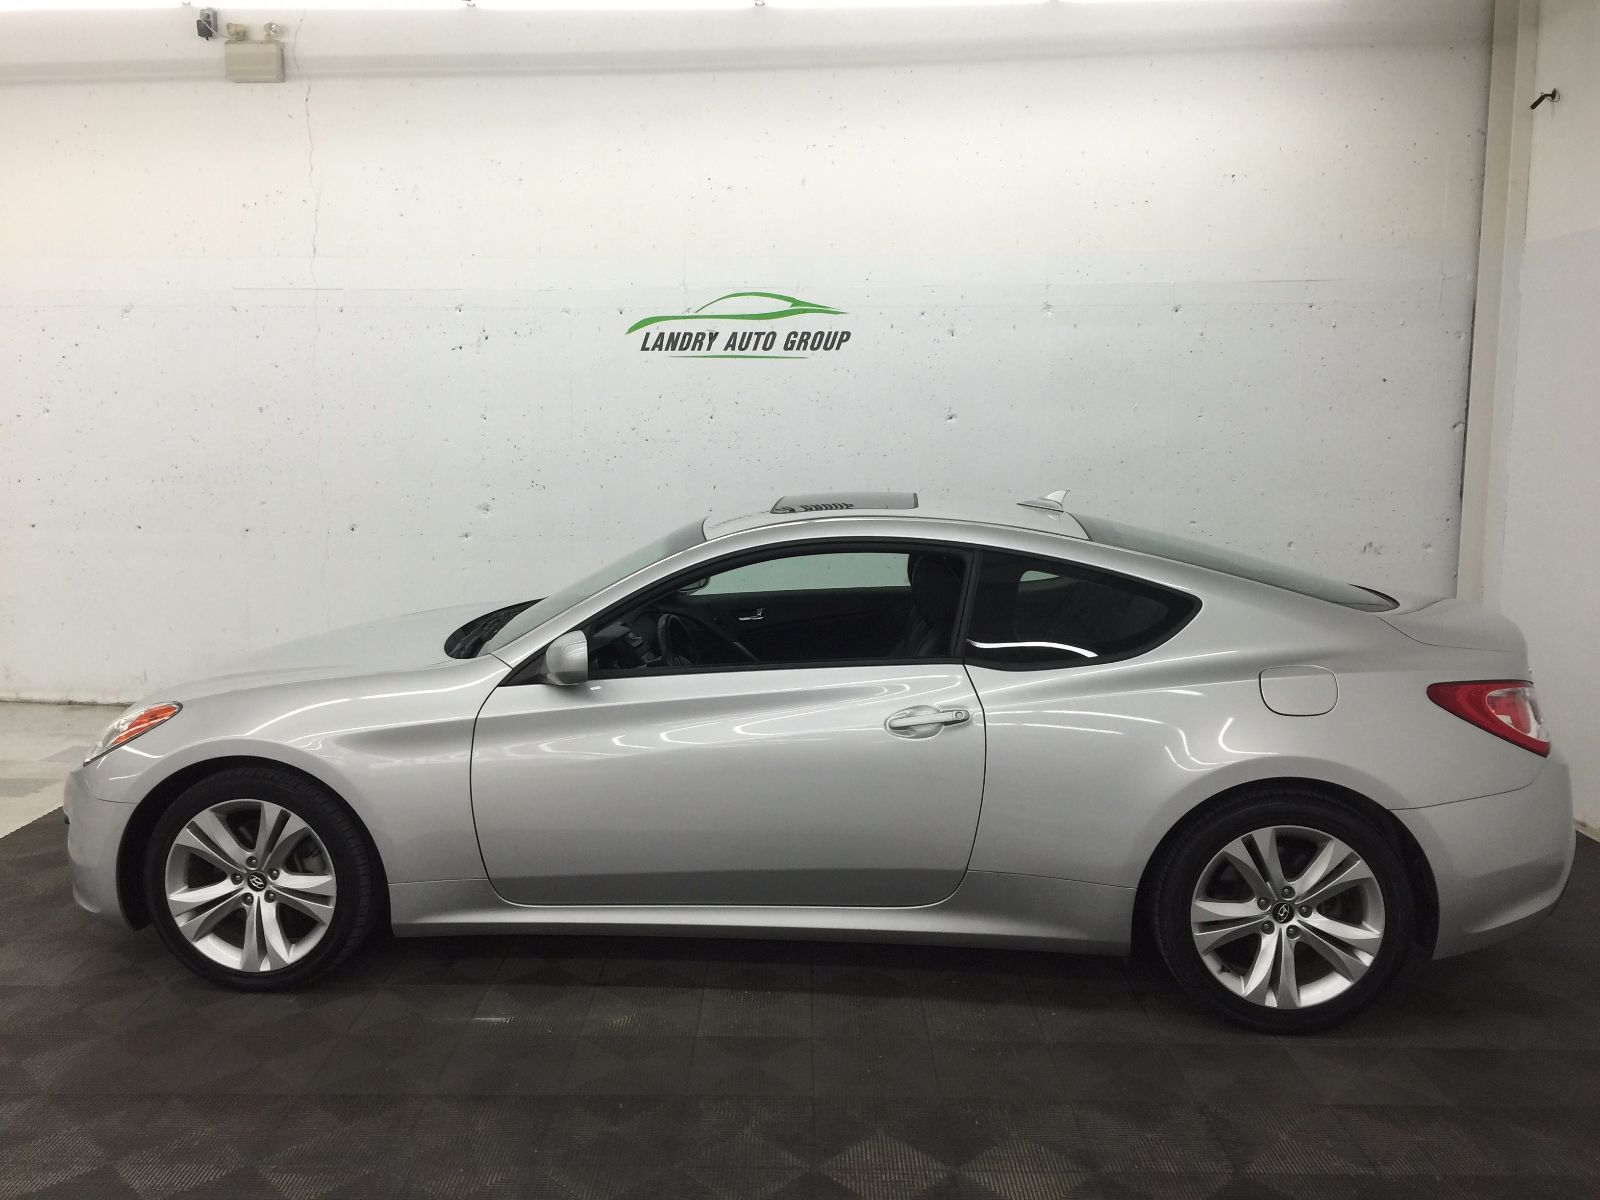 used 2012 hyundai genesis coupe 2 0t in berwick used inventory berwick used car centre in. Black Bedroom Furniture Sets. Home Design Ideas